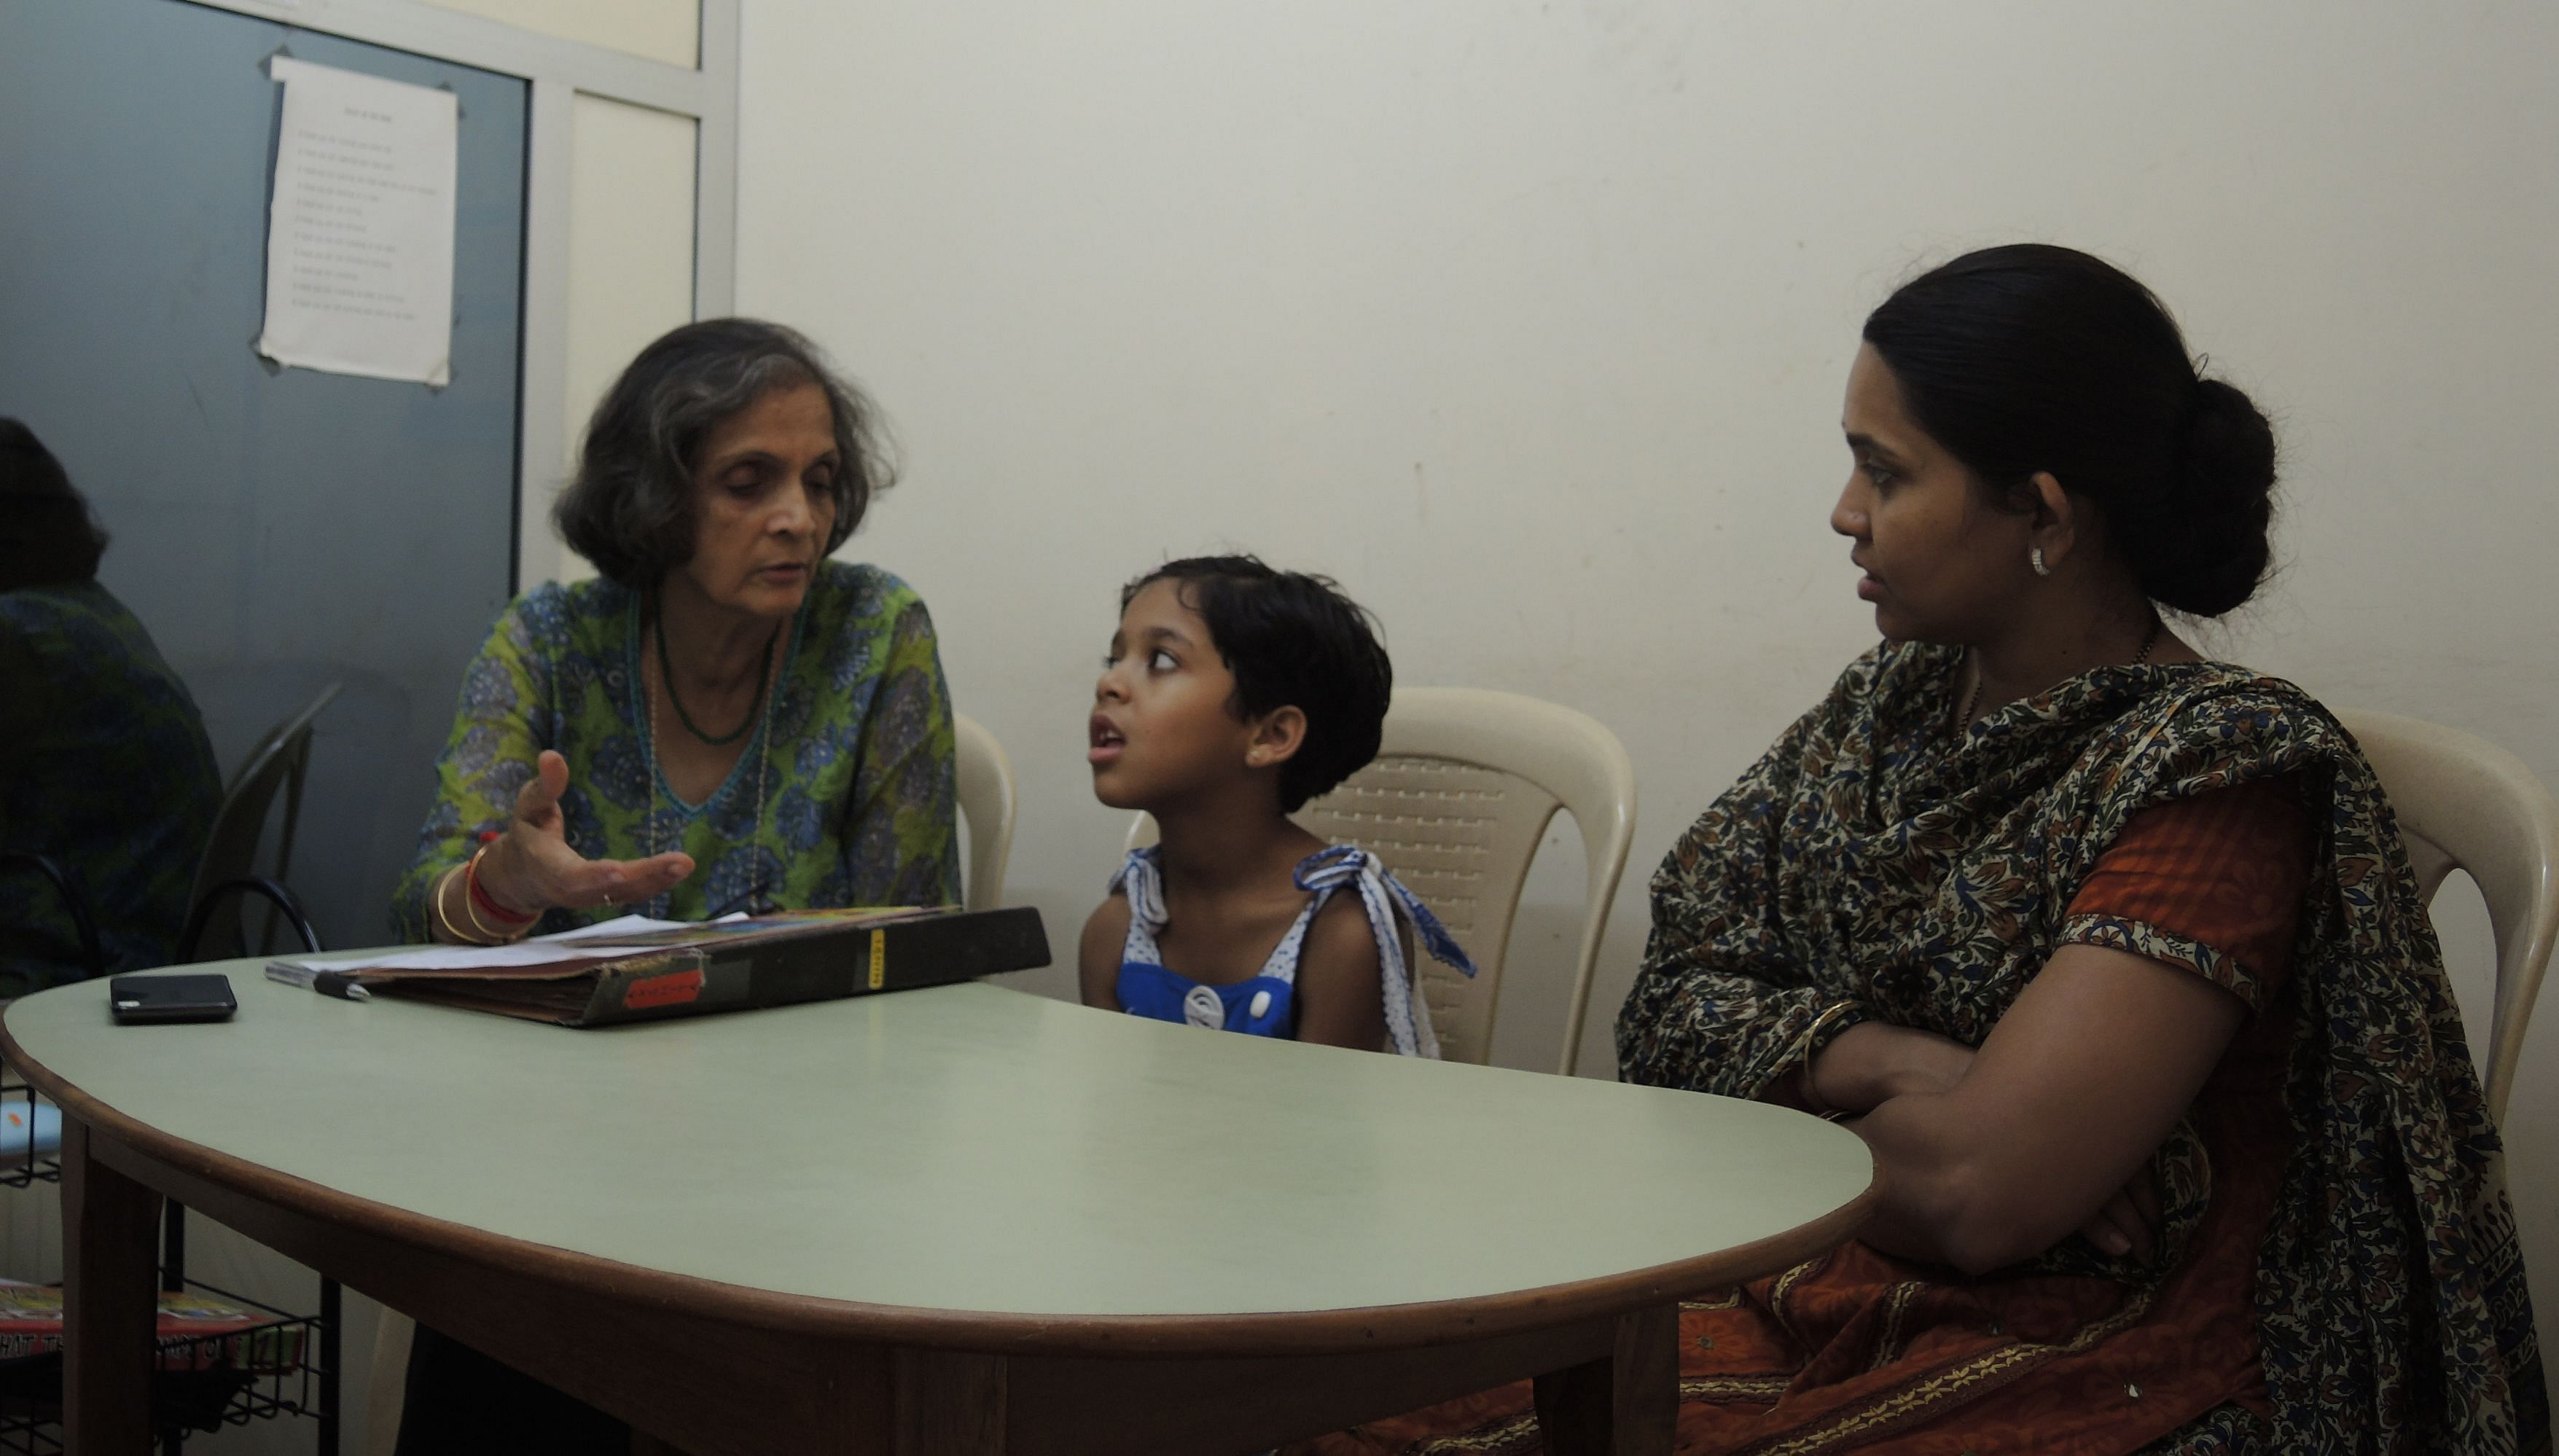 A few months of sessions and the kid manages to respond in spoken language. Isn't it amazing?